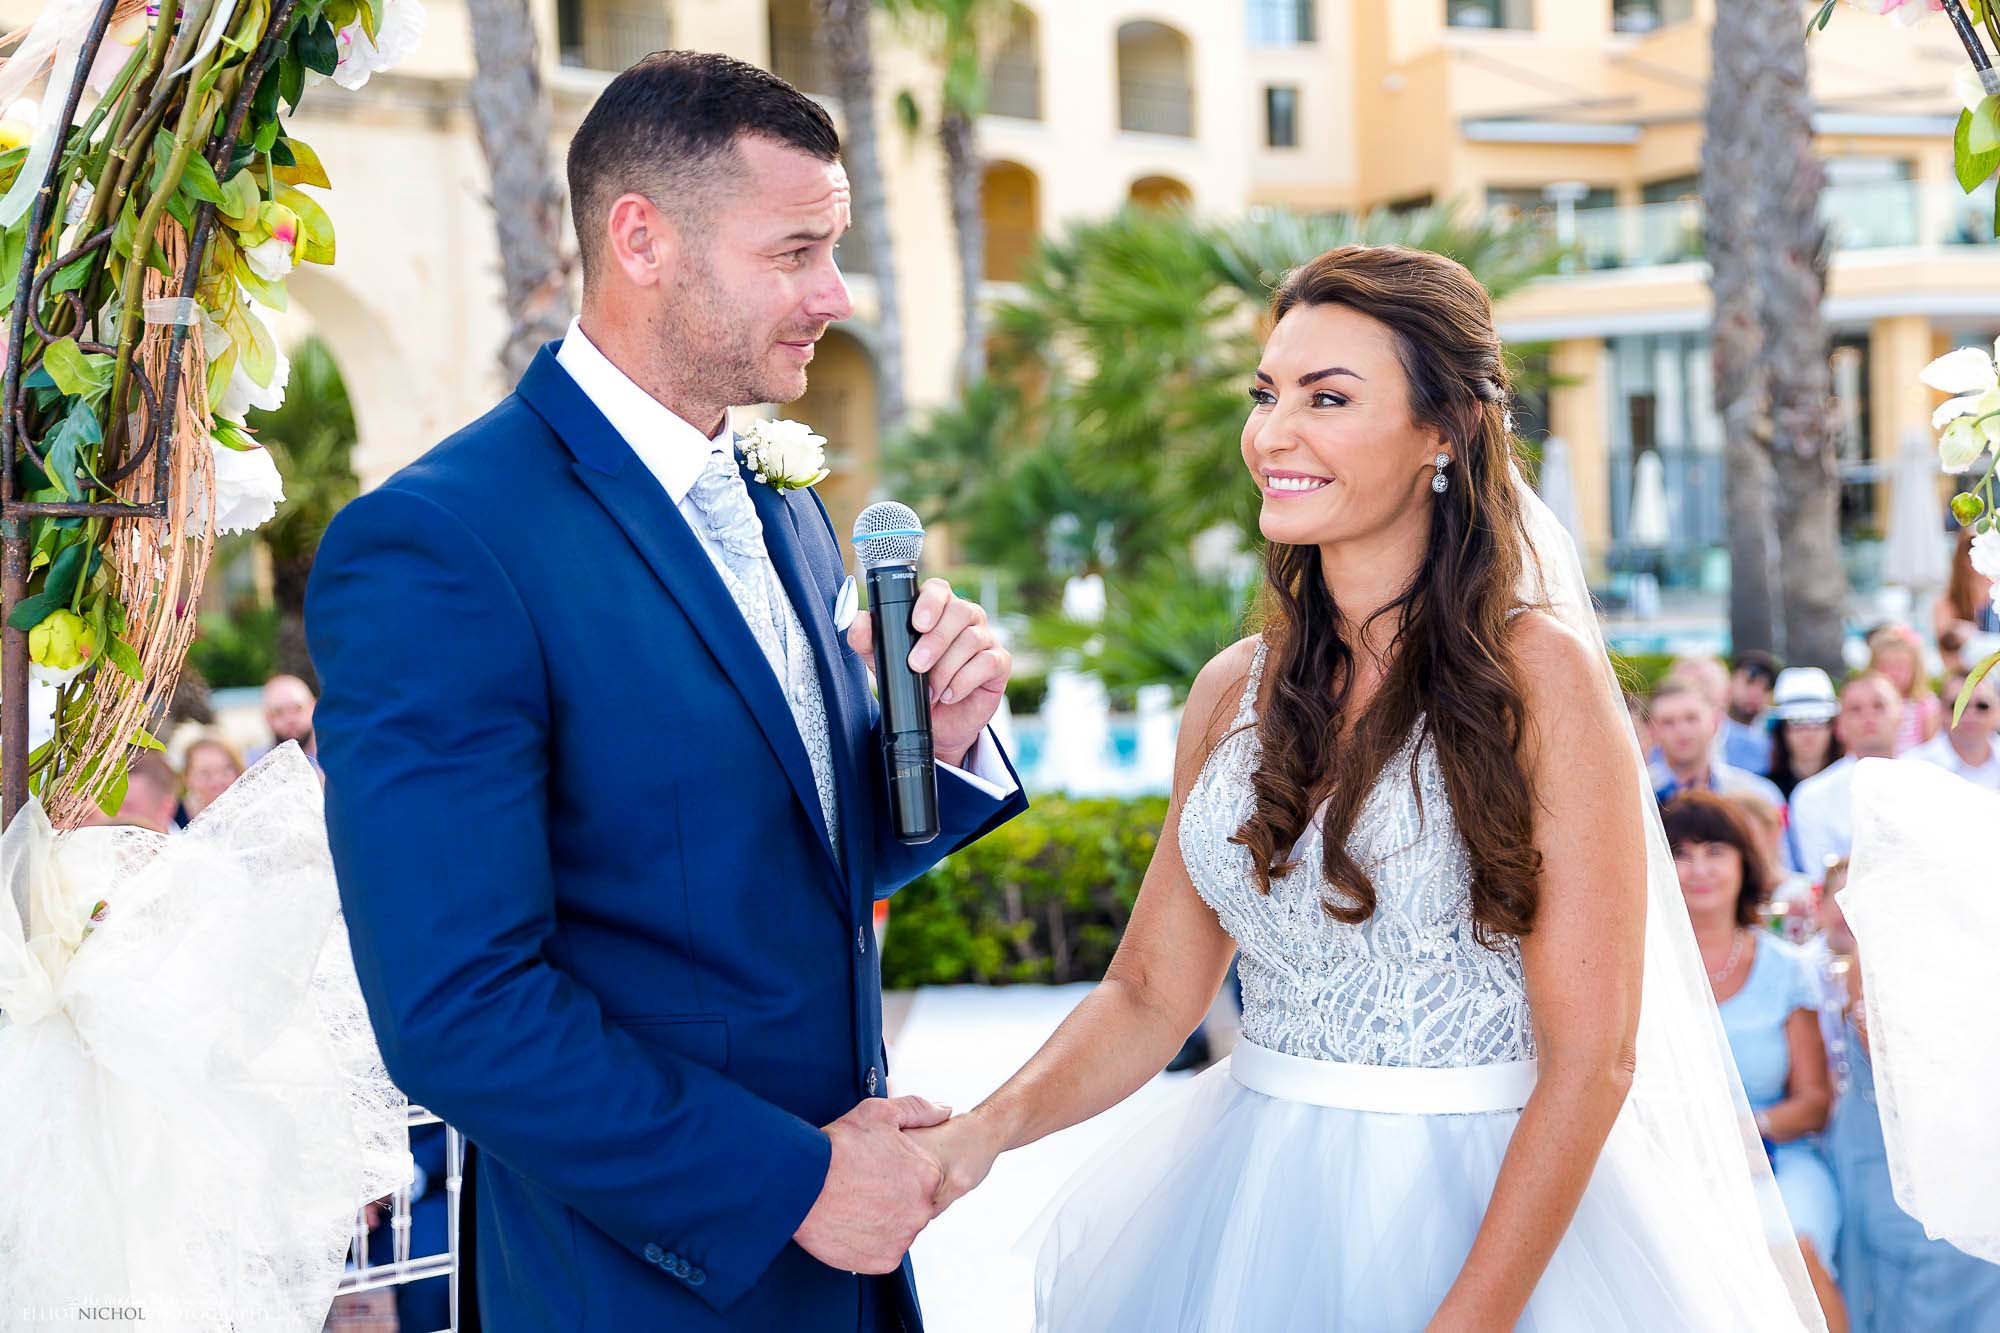 Blue wedding dress vows during the civil ceremony. Northeast wedding photography